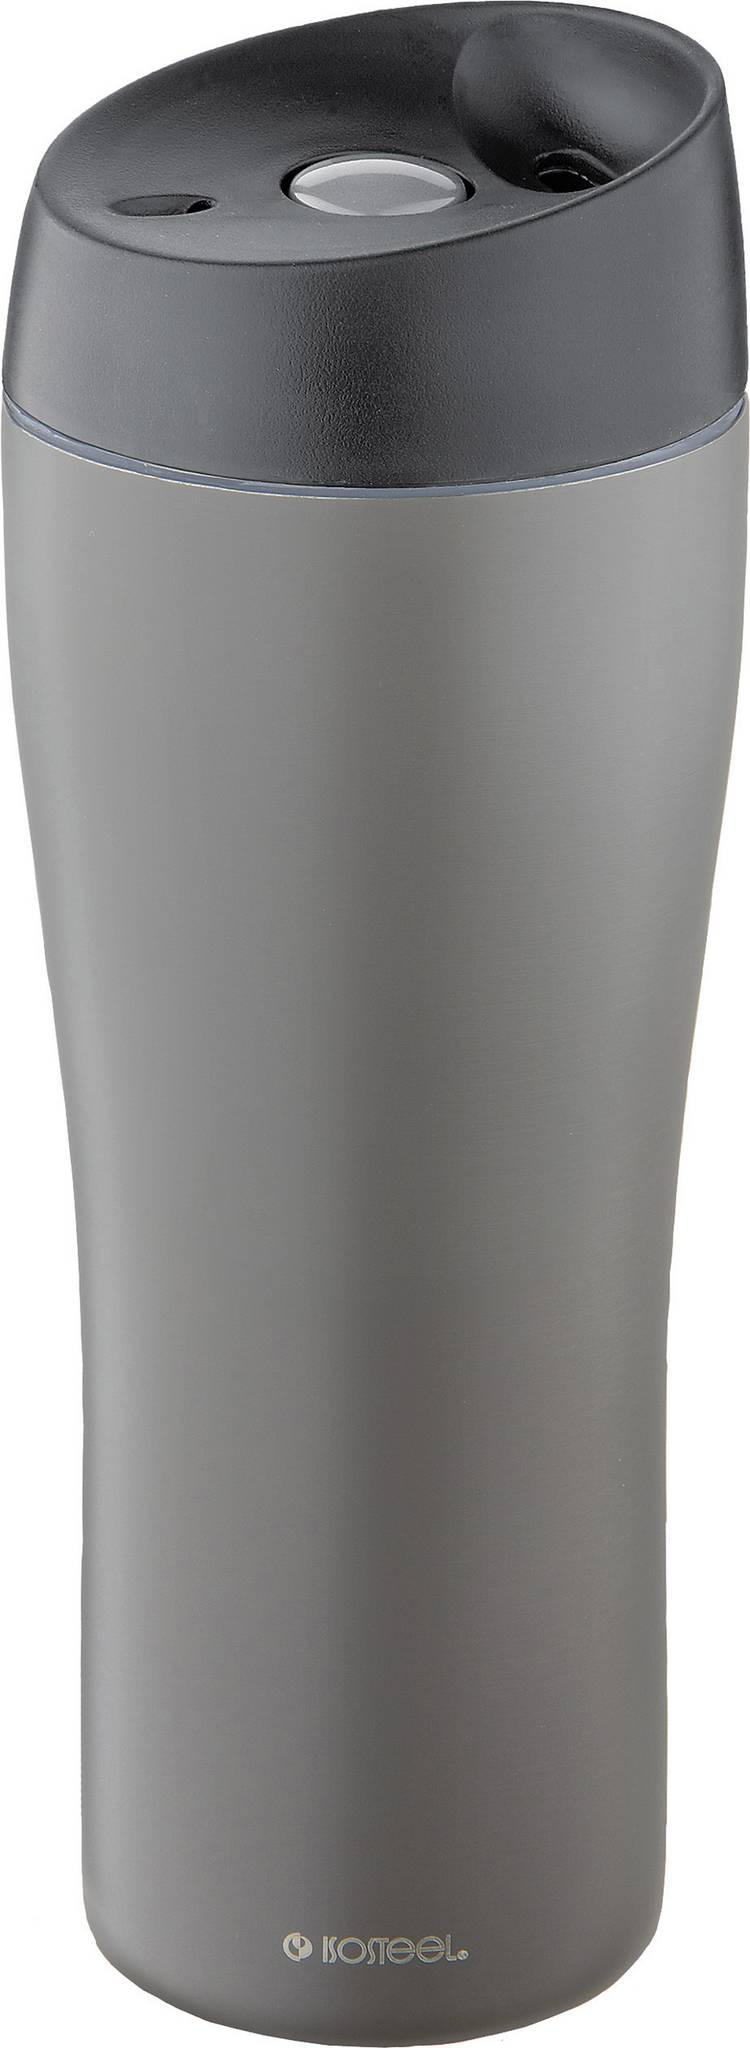 Image of Isosteel VA-9581QTI VA-9581QTI Thermosbeker Titaangrijs 400 ml